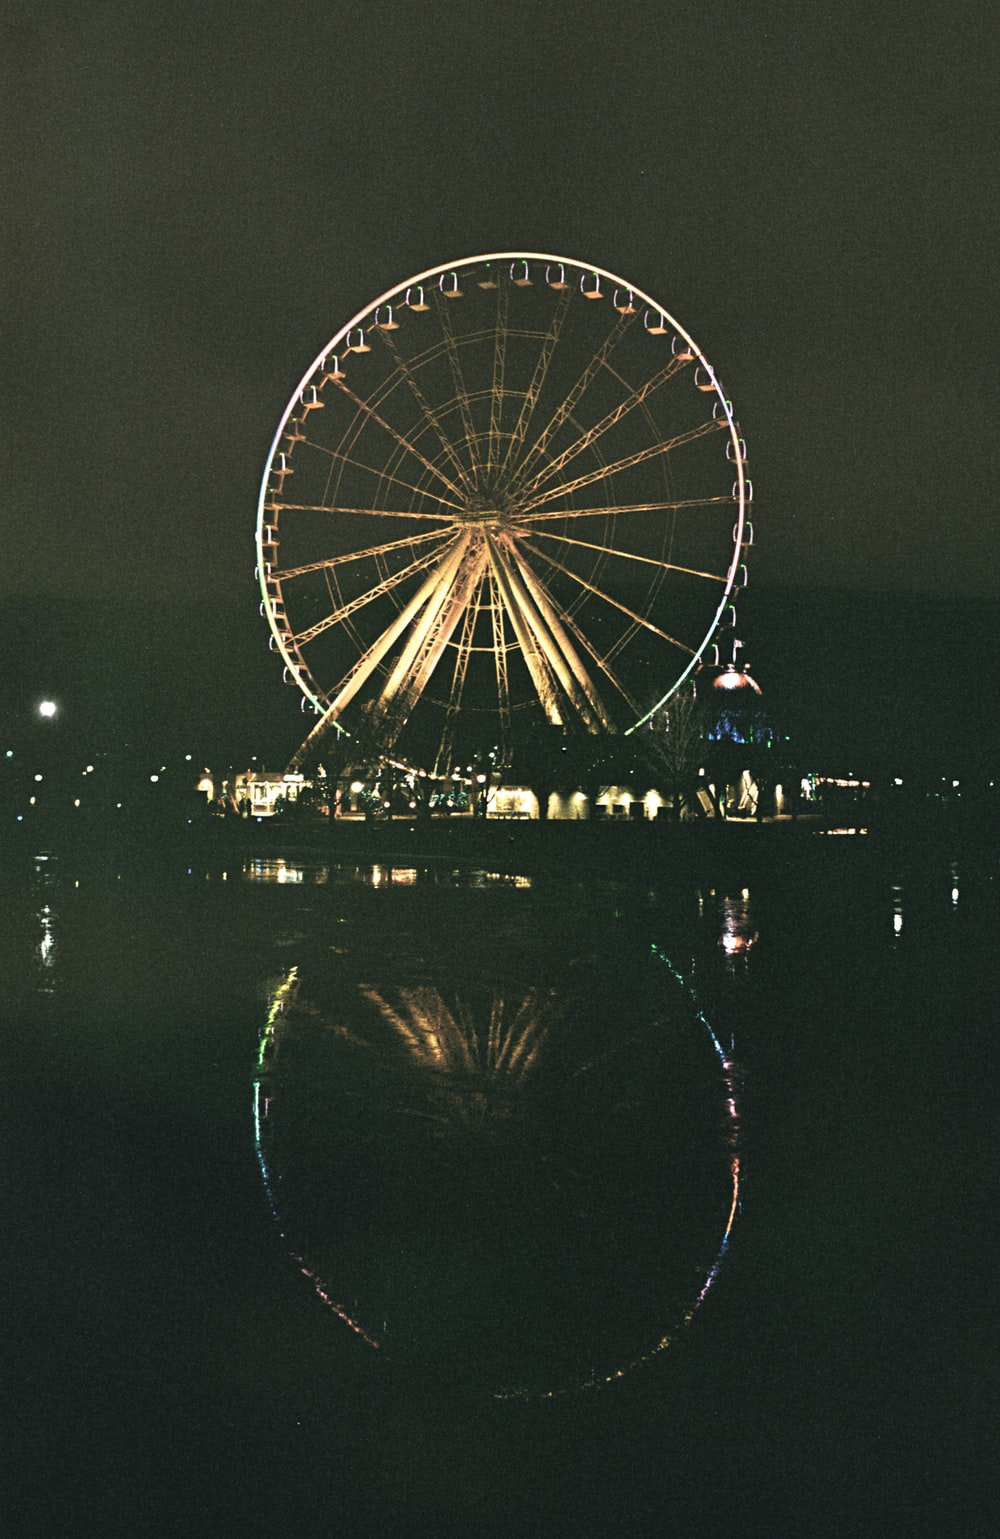 ferris wheel near body of water during night time